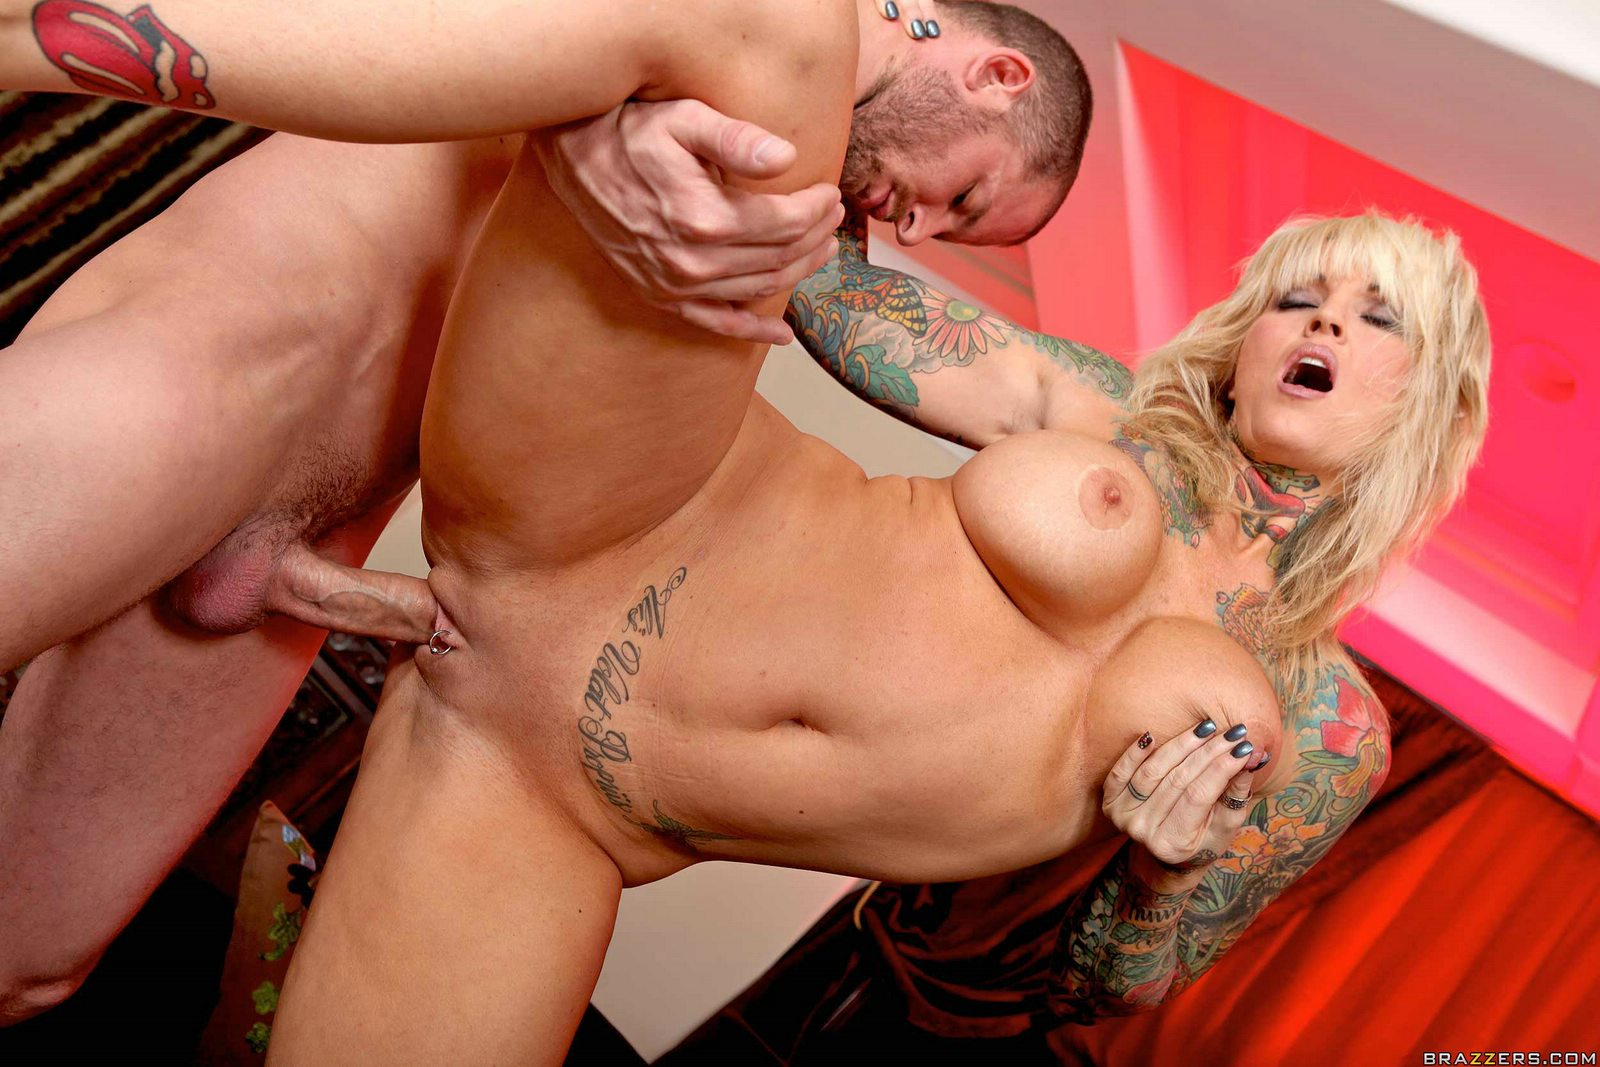 Not absolutely Janine lindemulder soft naked gallery was